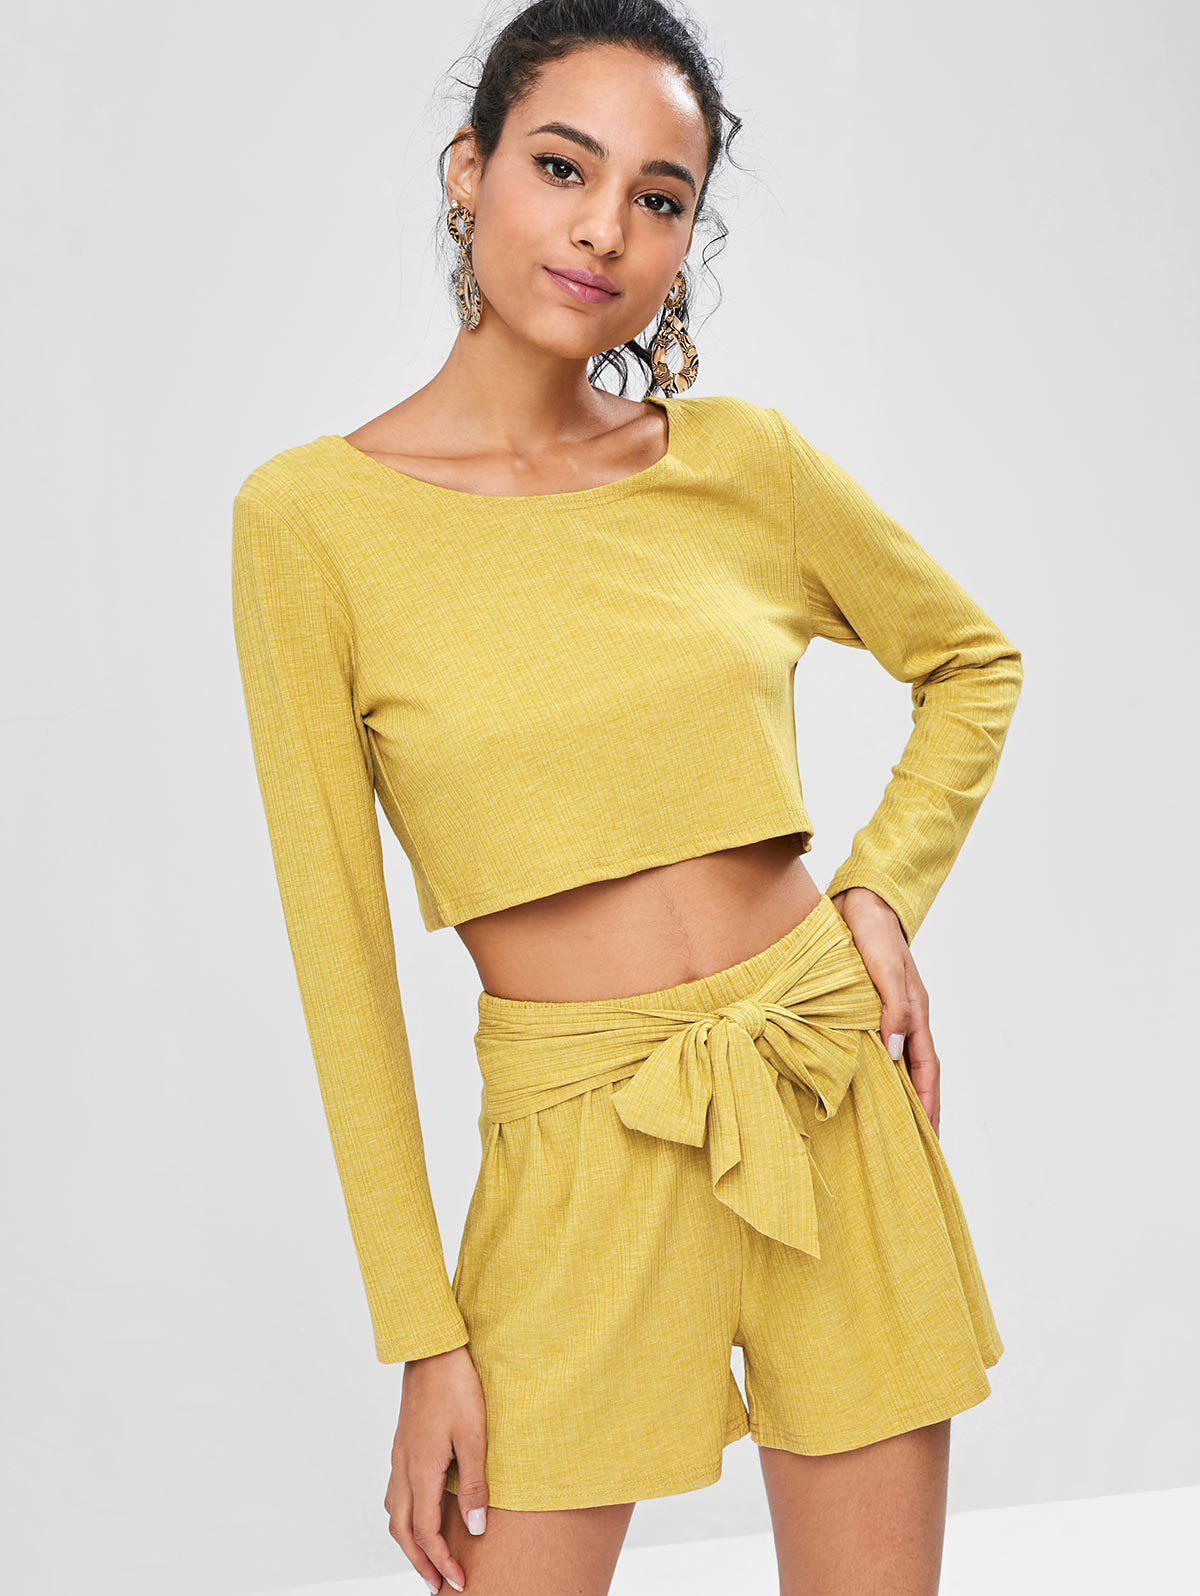 Ribbed Crop Top and Shorts Co Ord Set, Harvest yellow